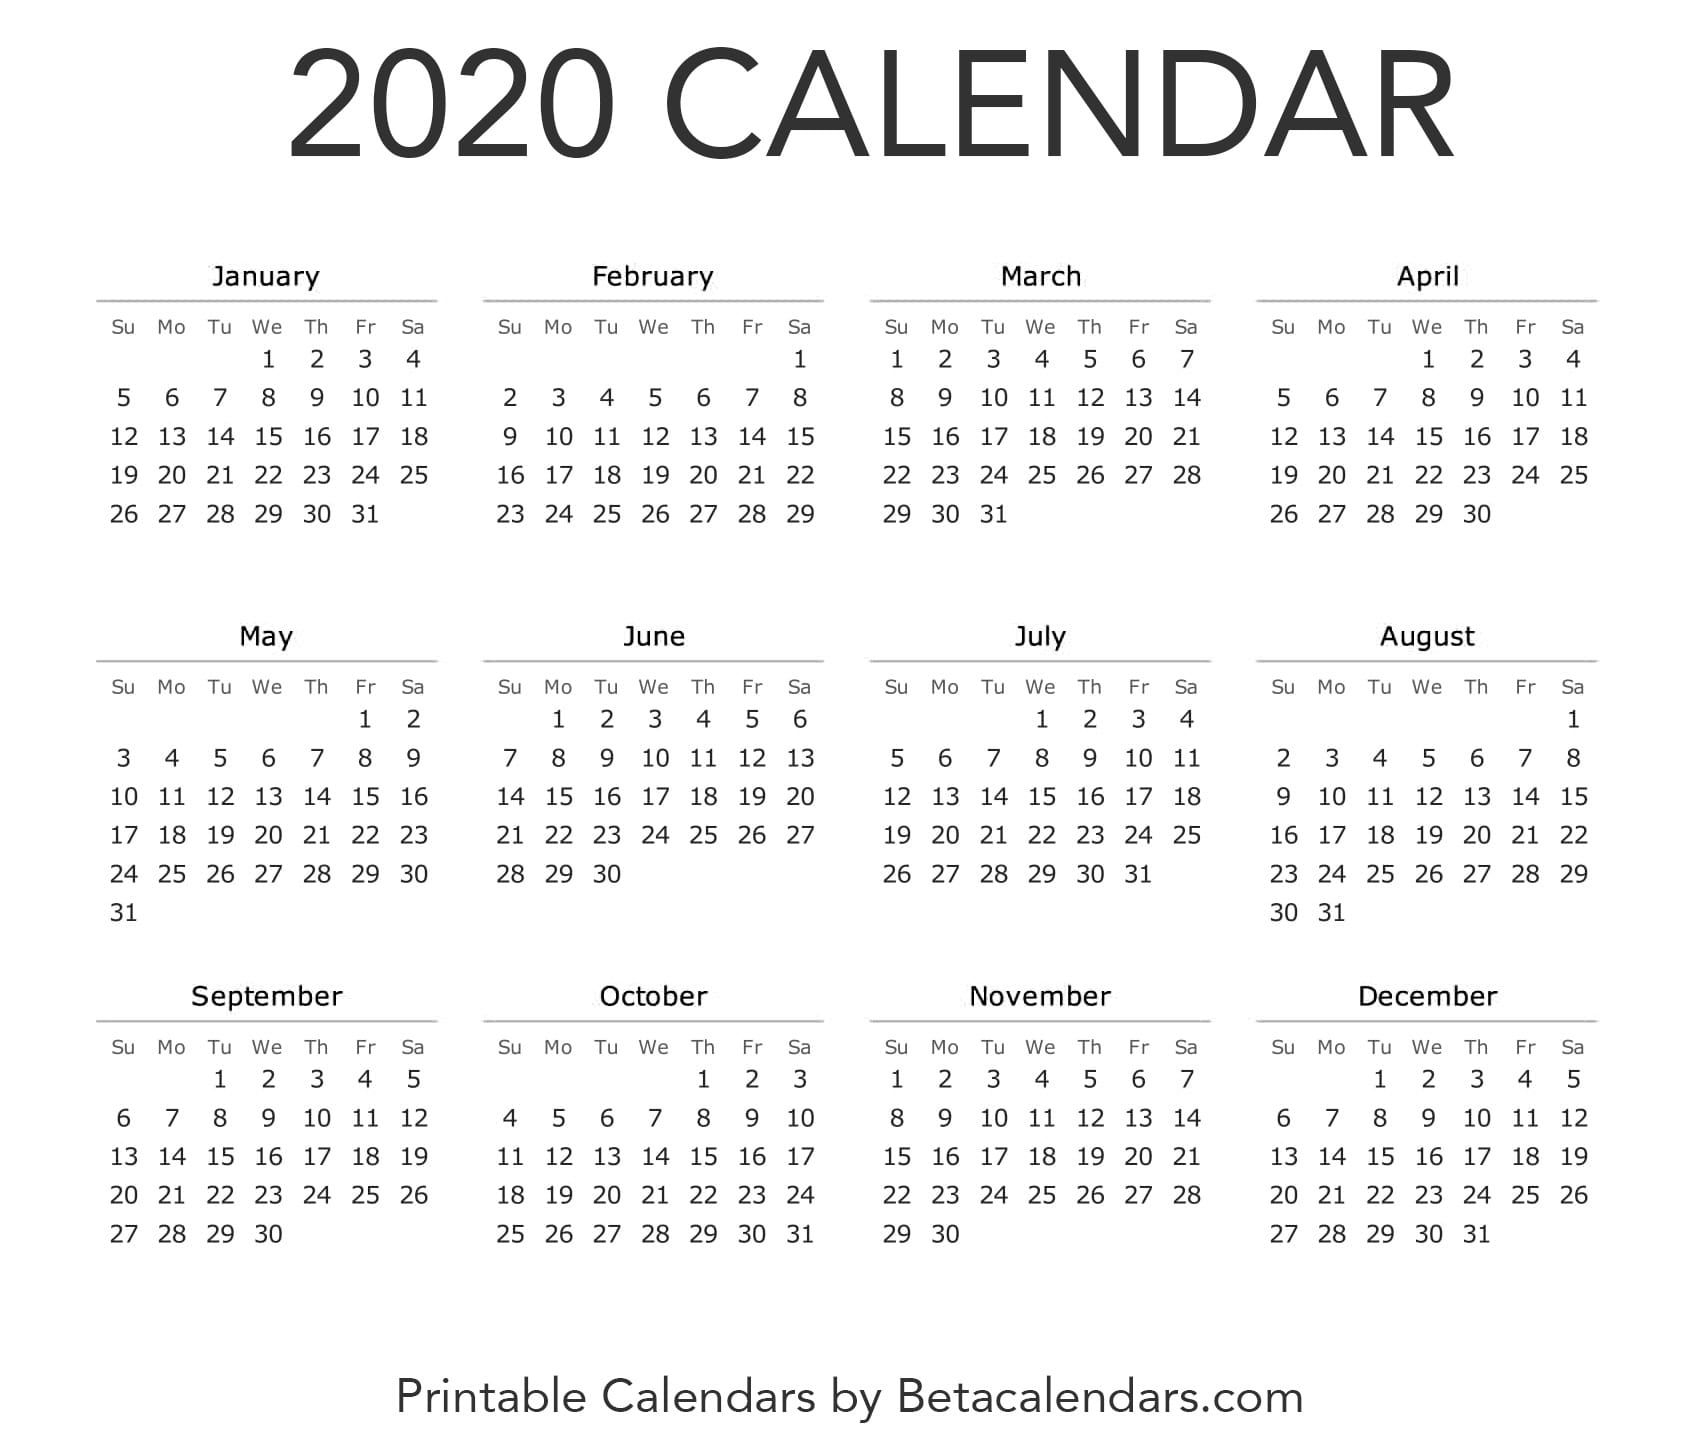 Calendar 2020 | Printable Yearly Calendar, Calendar 2020